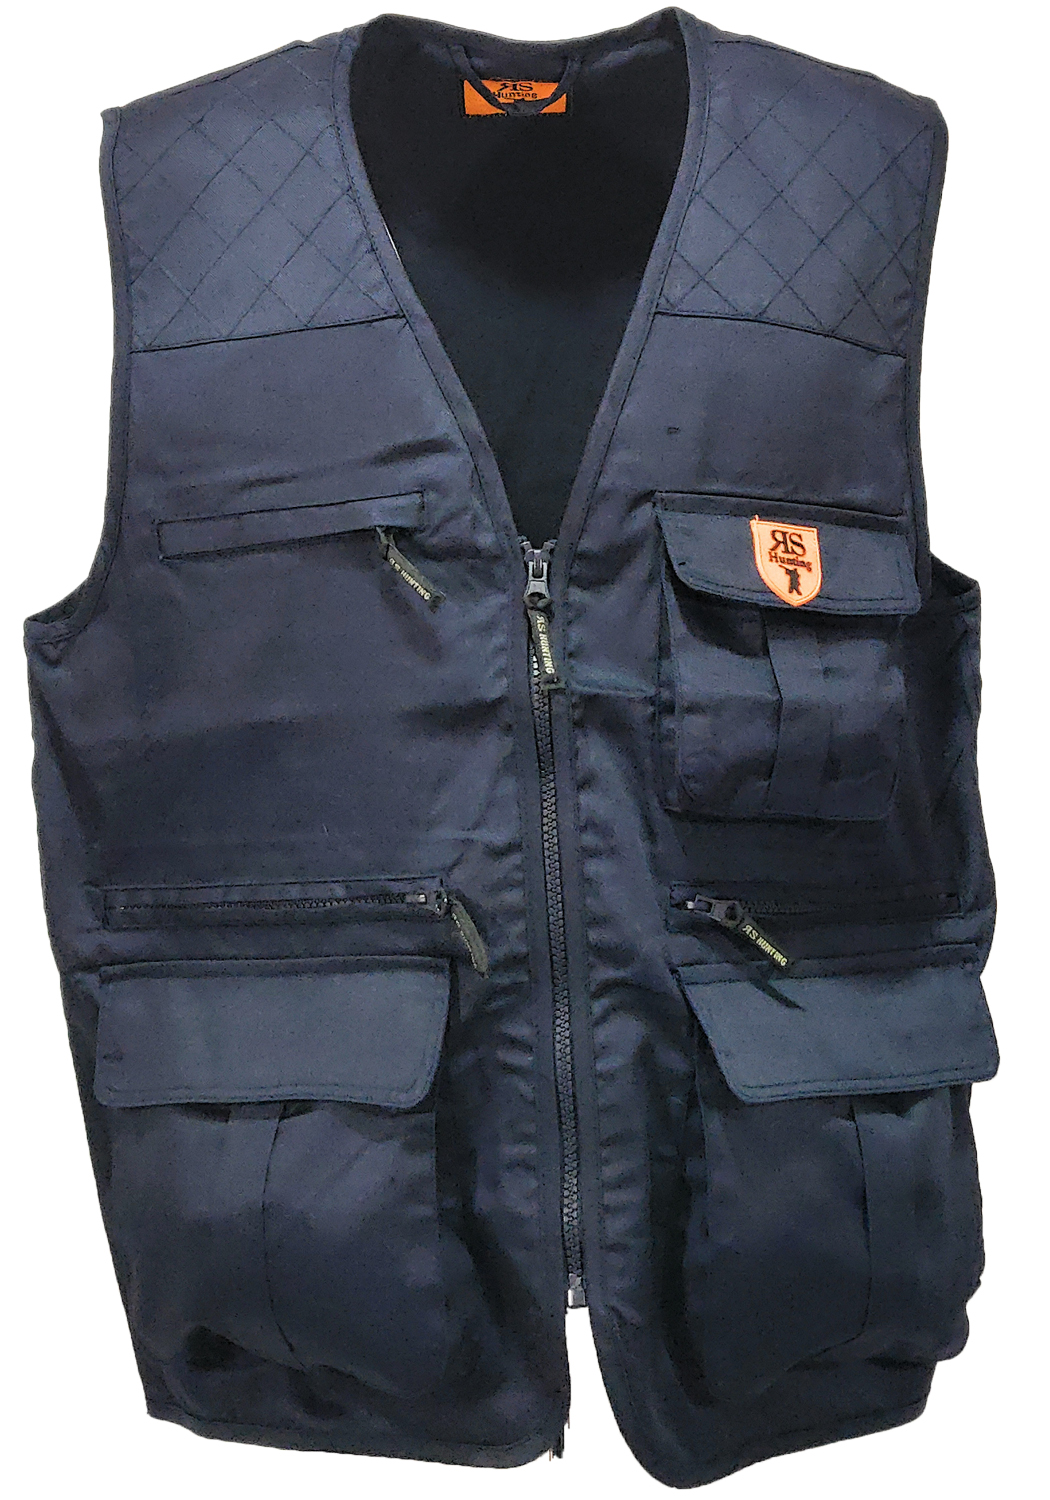 Fishing vest multipockets hunting fishing man cotton soft air tactical shooting